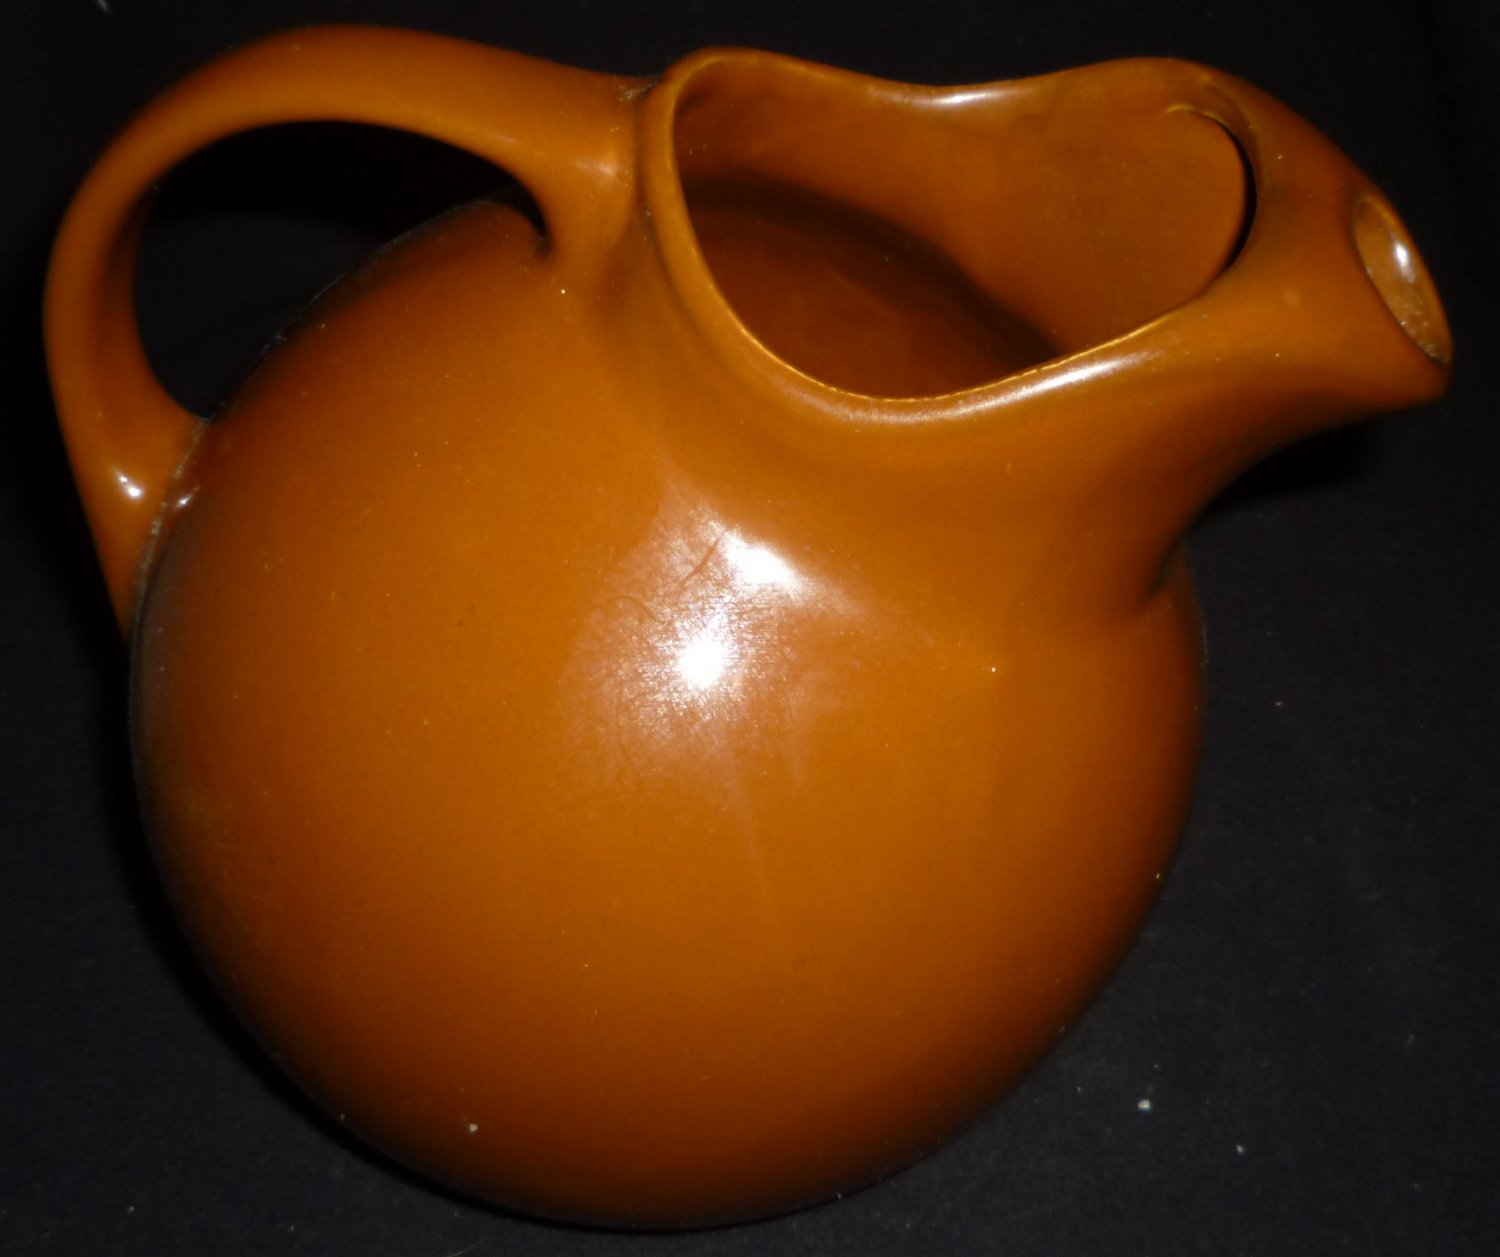 VINTAGE HALL BROWN CERAMIC POTTERY WATER PITCHER W/ICE CATCHER